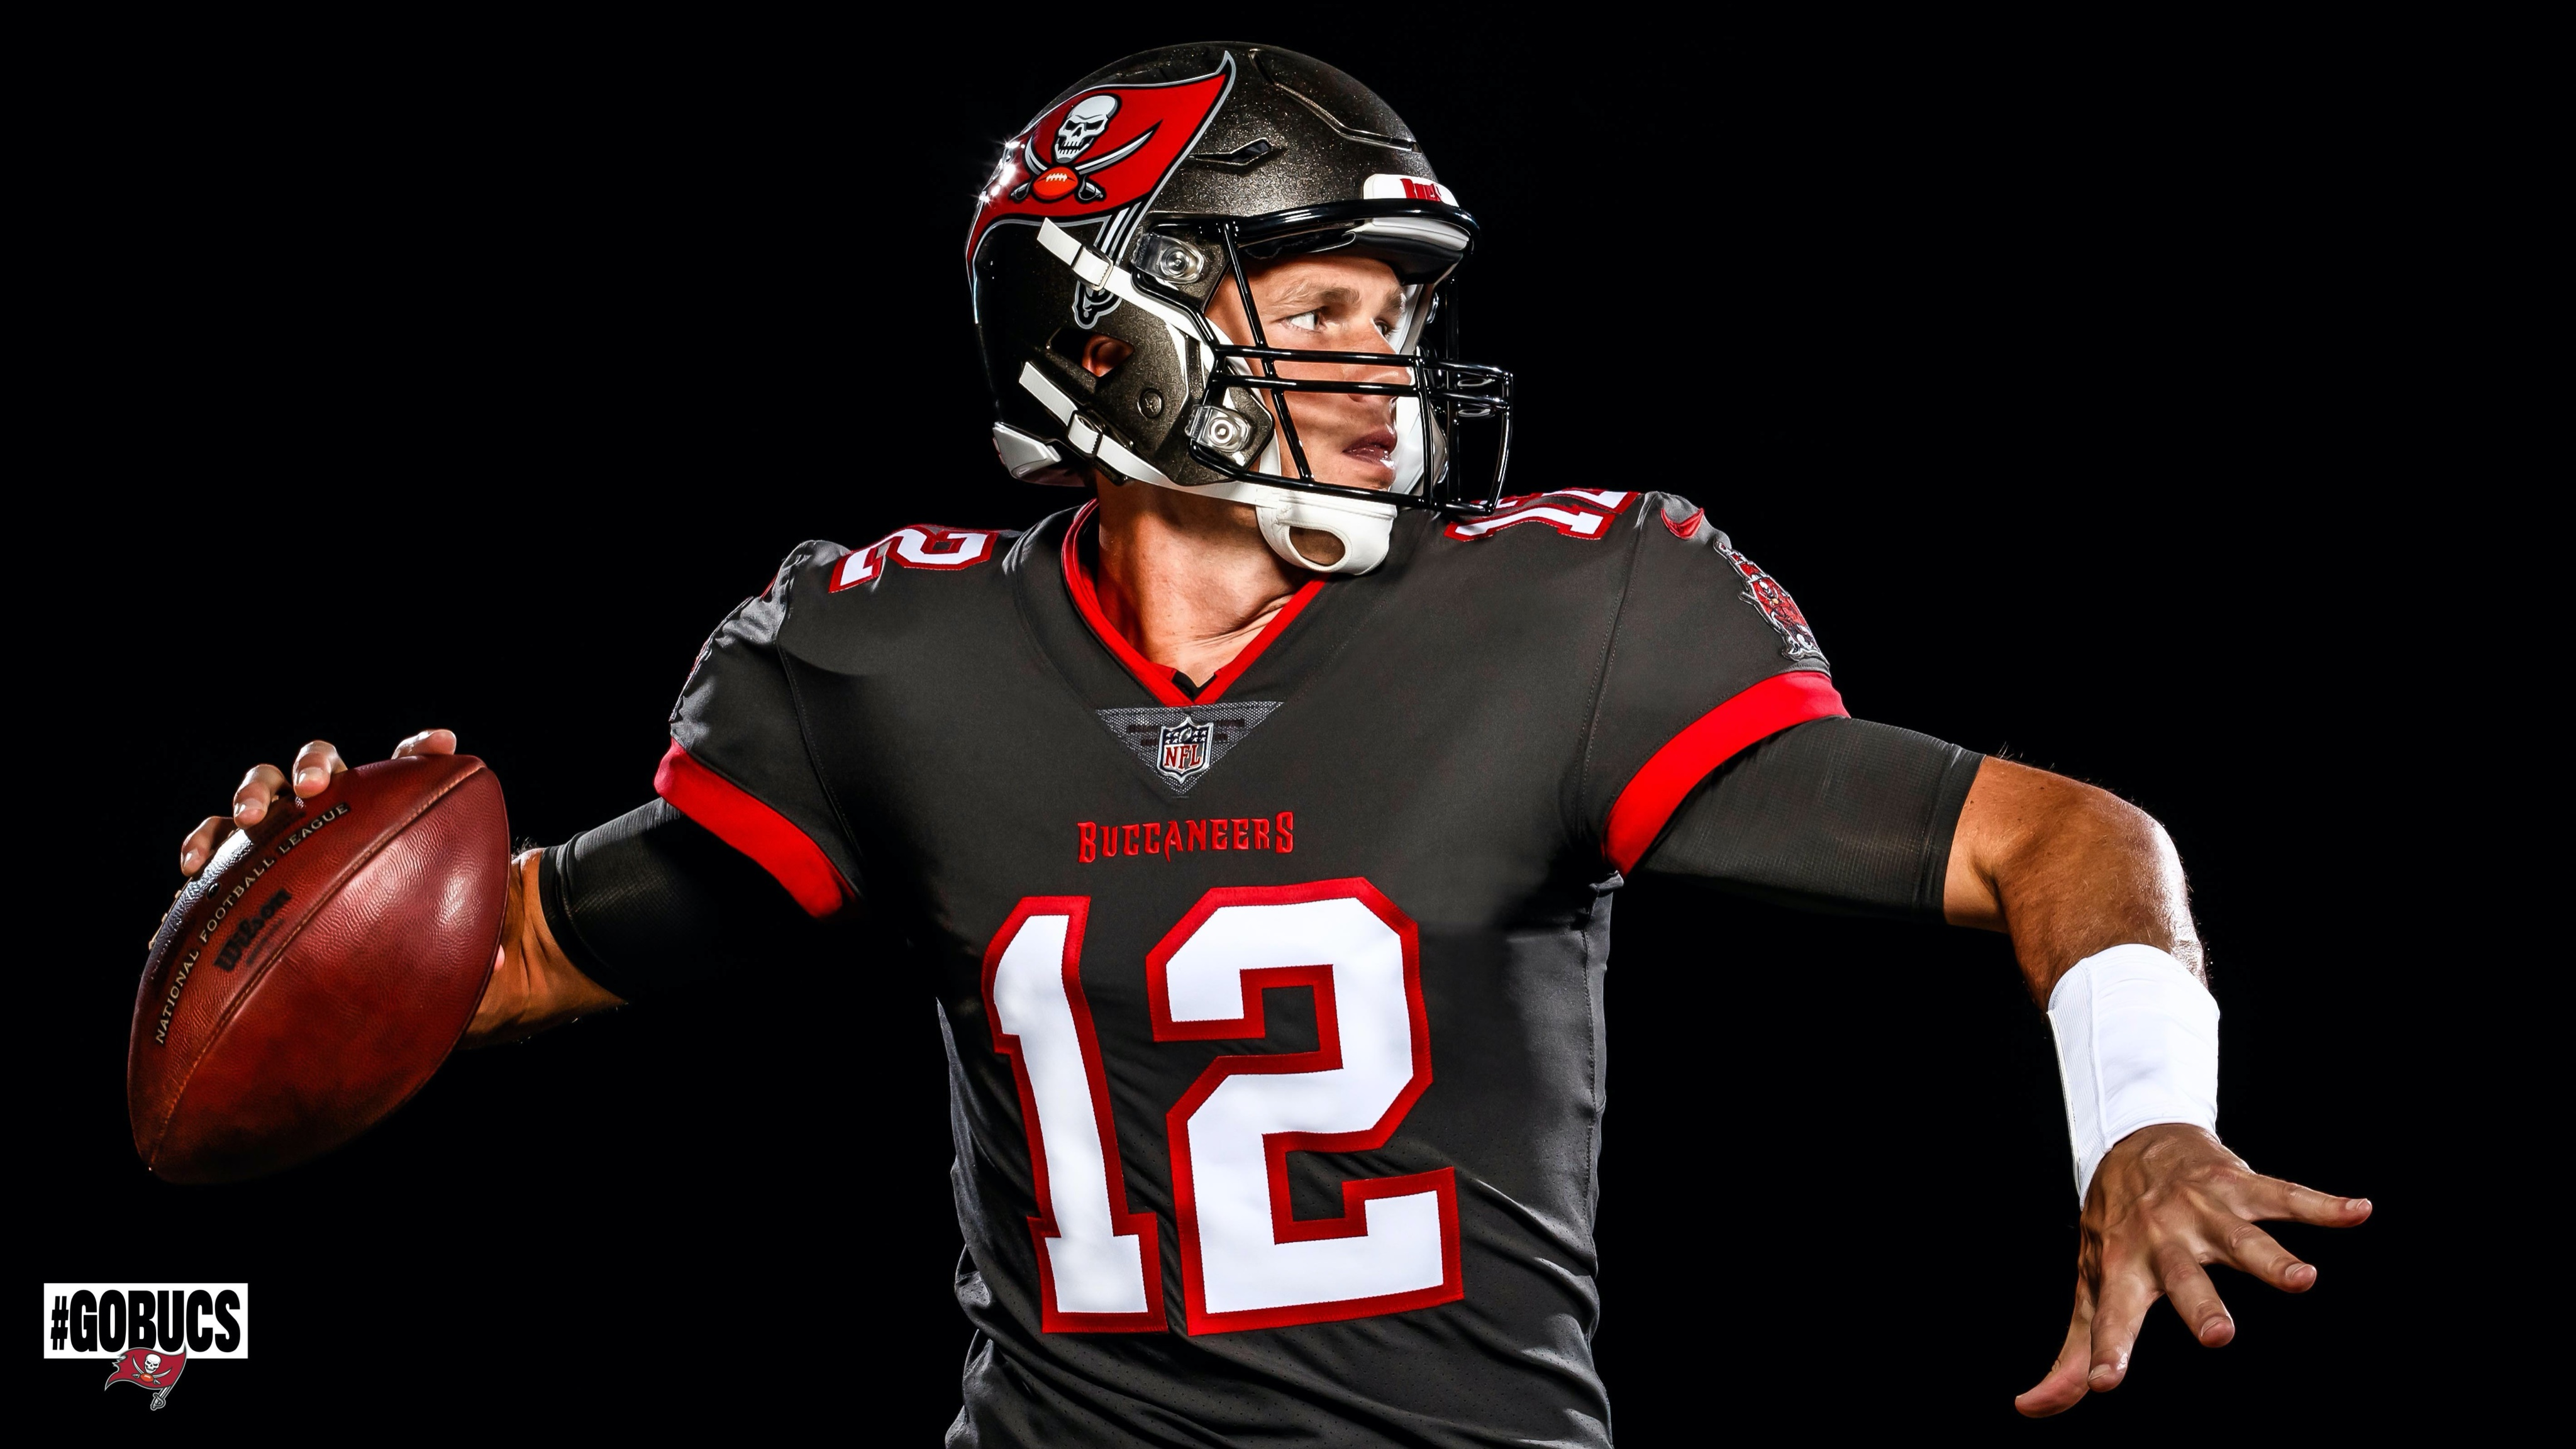 Buccaneers release photos of Tom Brady in a Bucs jersey for the ...